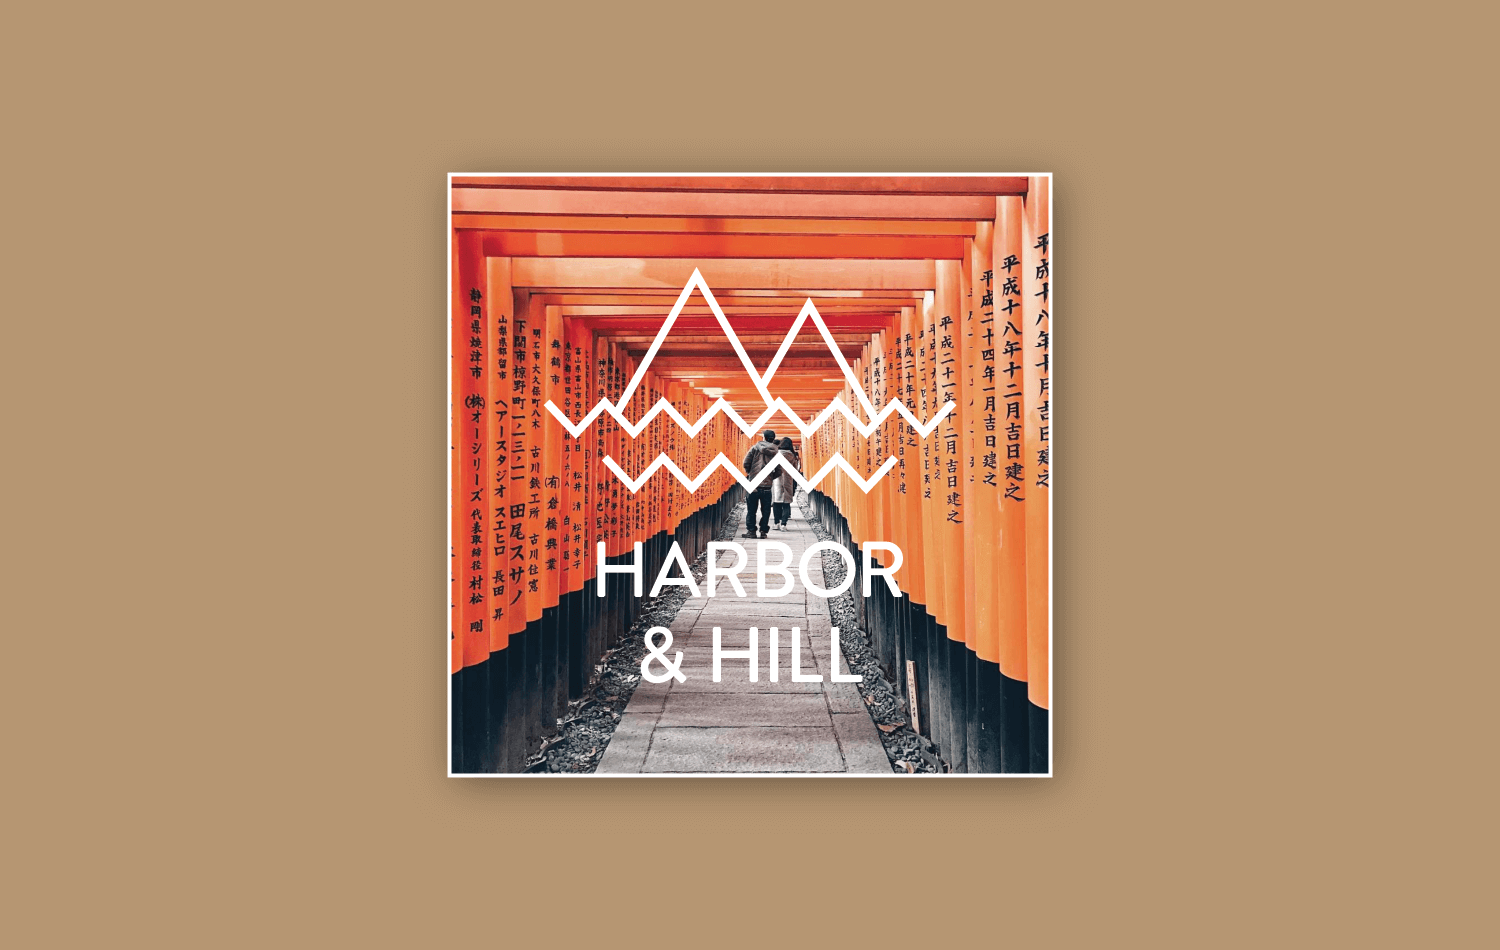 Harbor & Hill social content